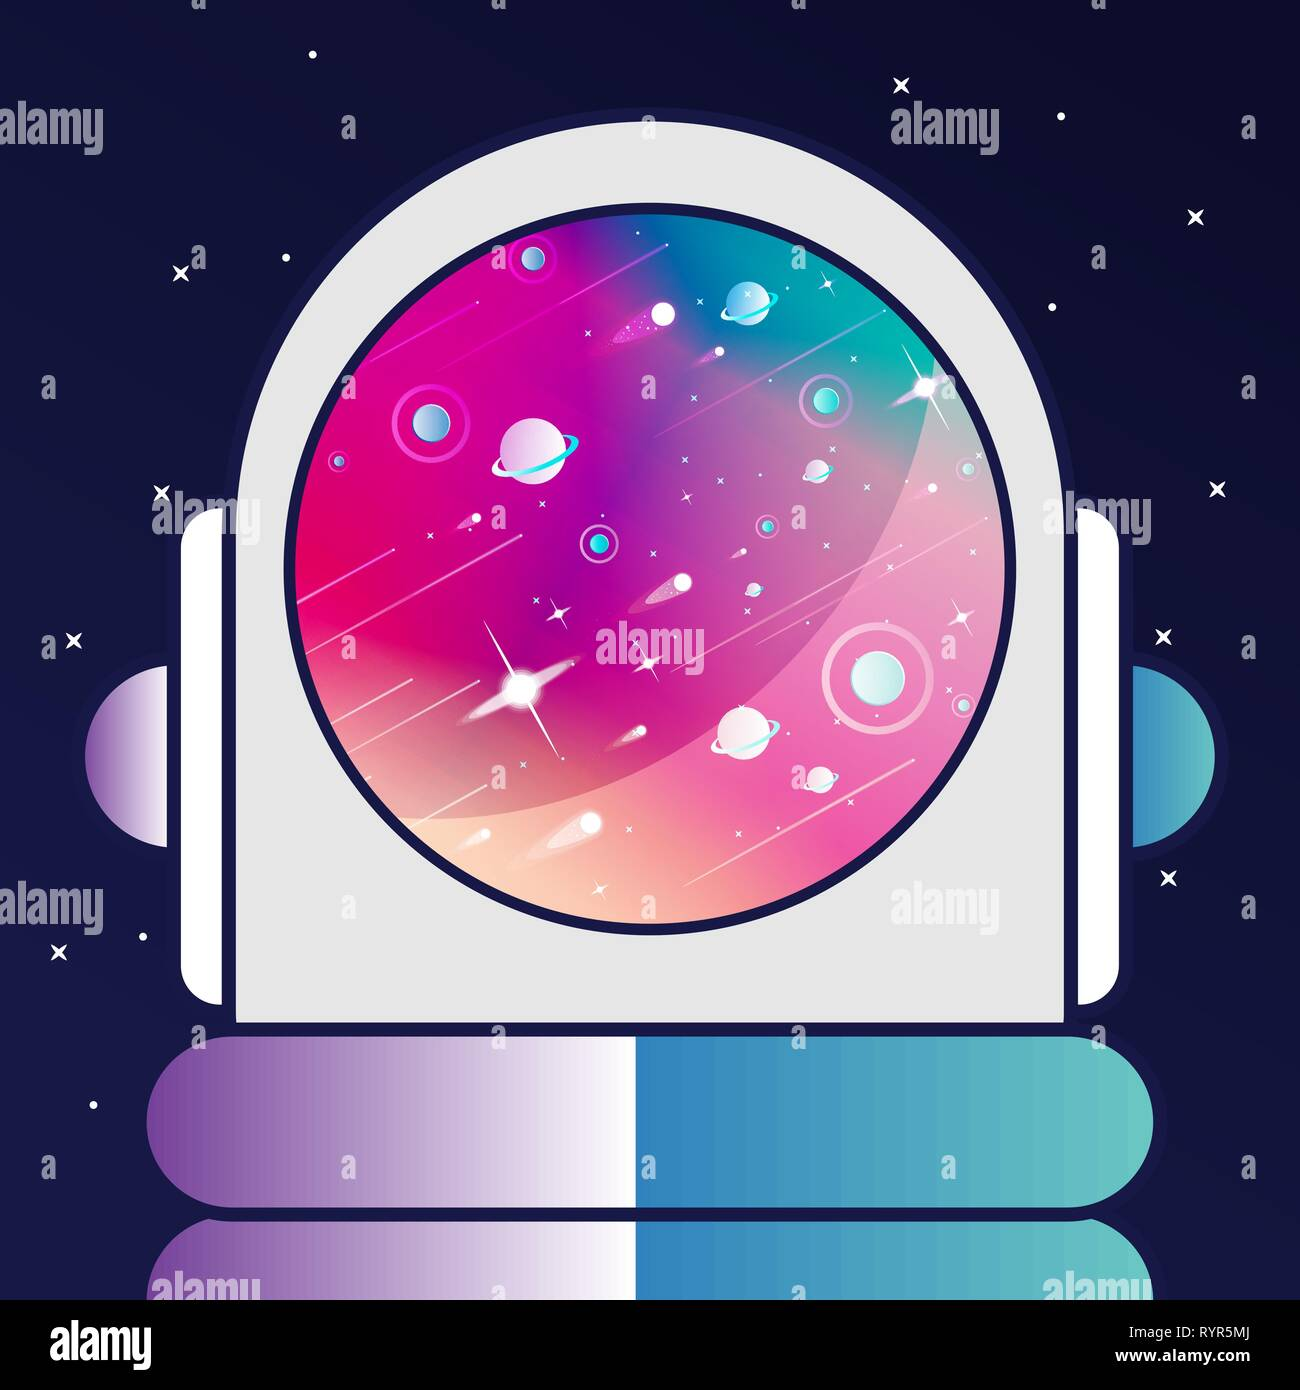 Astronaut in a galaxy background, fare from earth, another solar system. Comets, planets, stars and asteroid in a modern flat-design. - Stock Vector